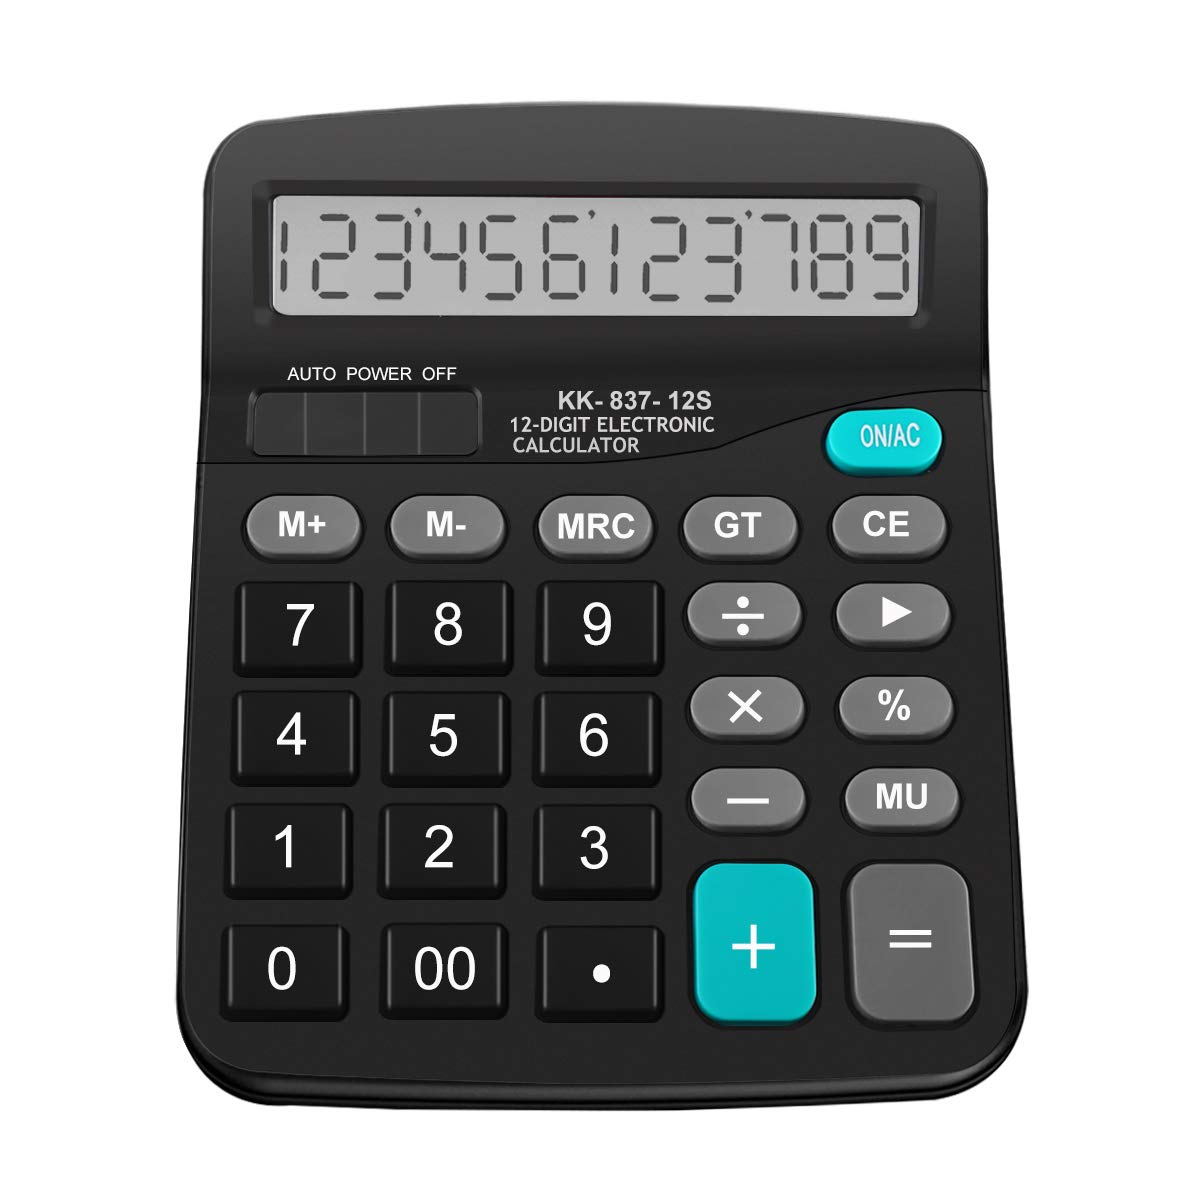 Hautoco Desk Calculator Basic Solar and AA Battery Power, 12 Digit Large LCD Display for School Office